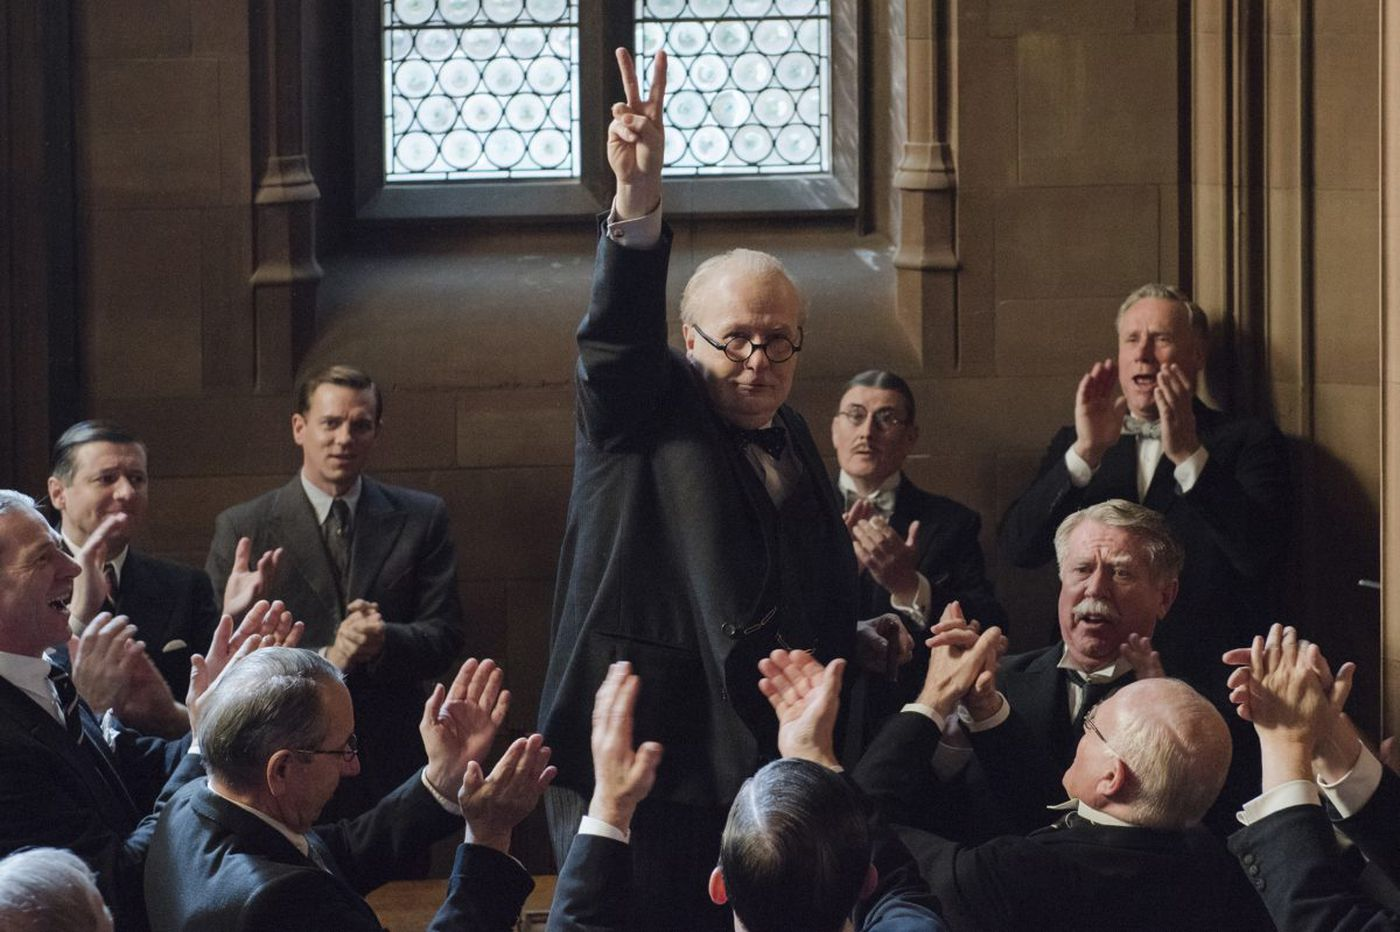 Winston Churchill biopic is a reminder that America can rise above this darkest of hours   Opinion